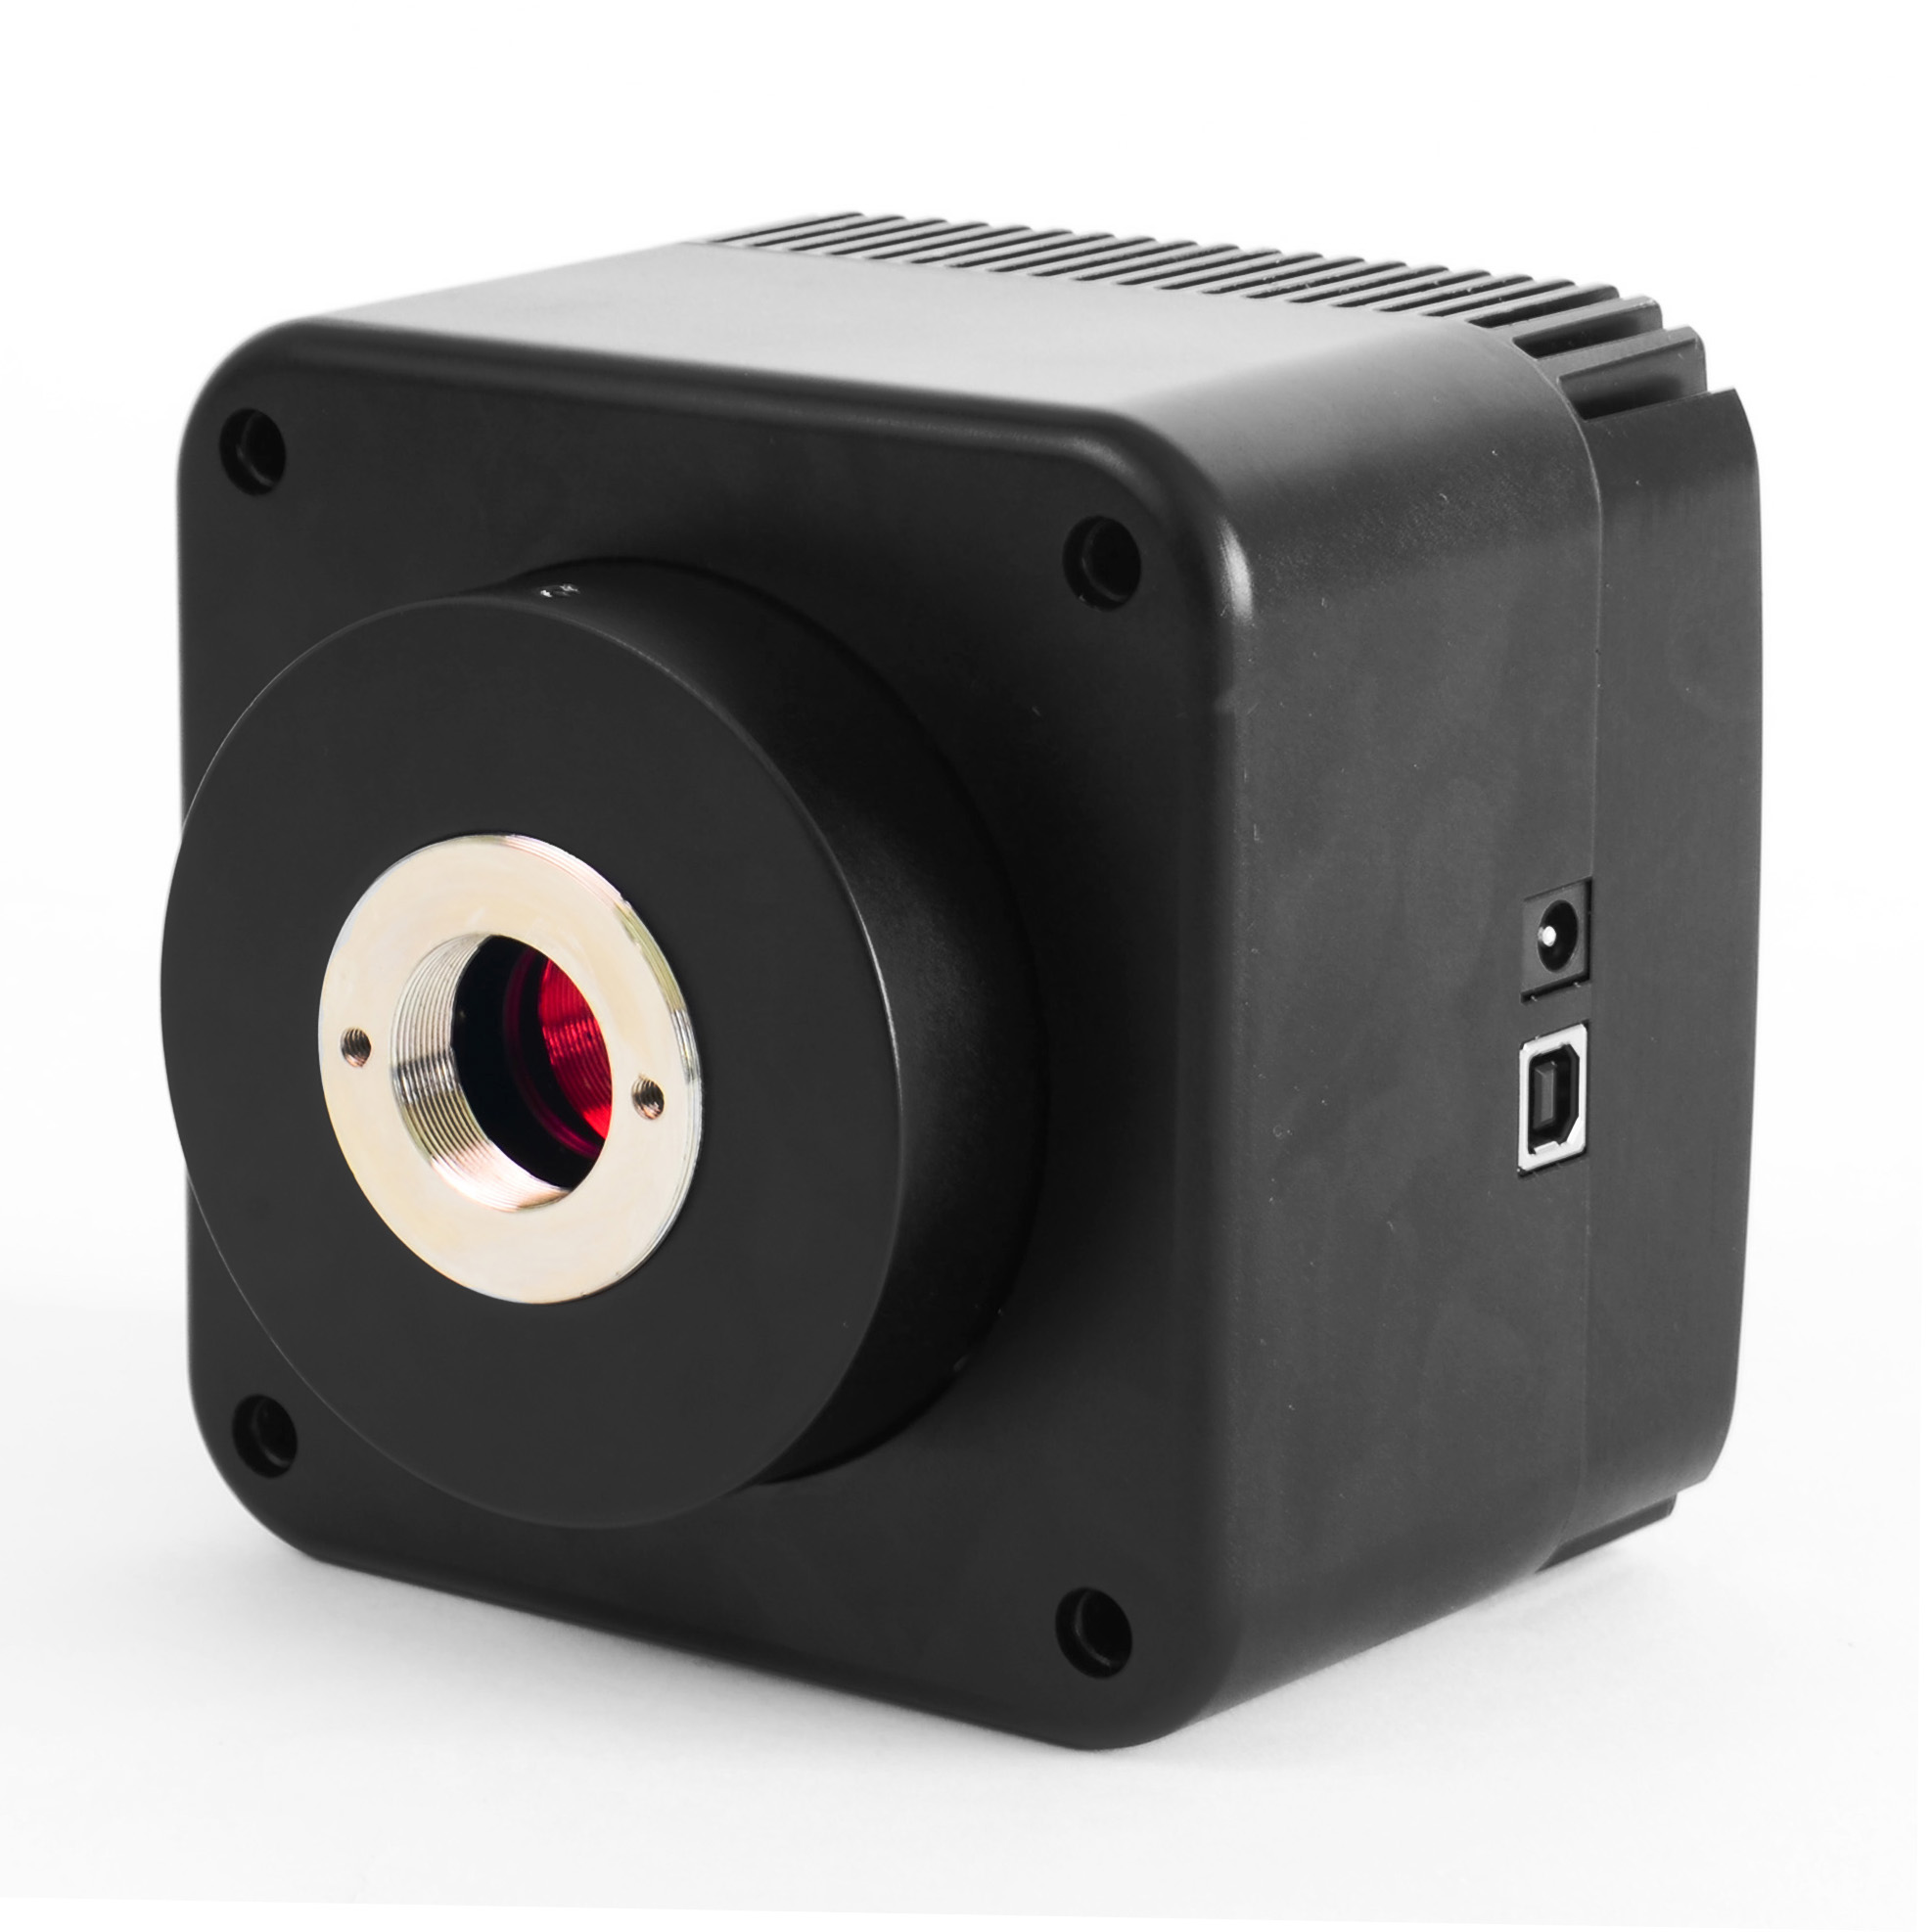 SCCCD Series Semicondector Cooling C-mount USB2.0 CCD Camera